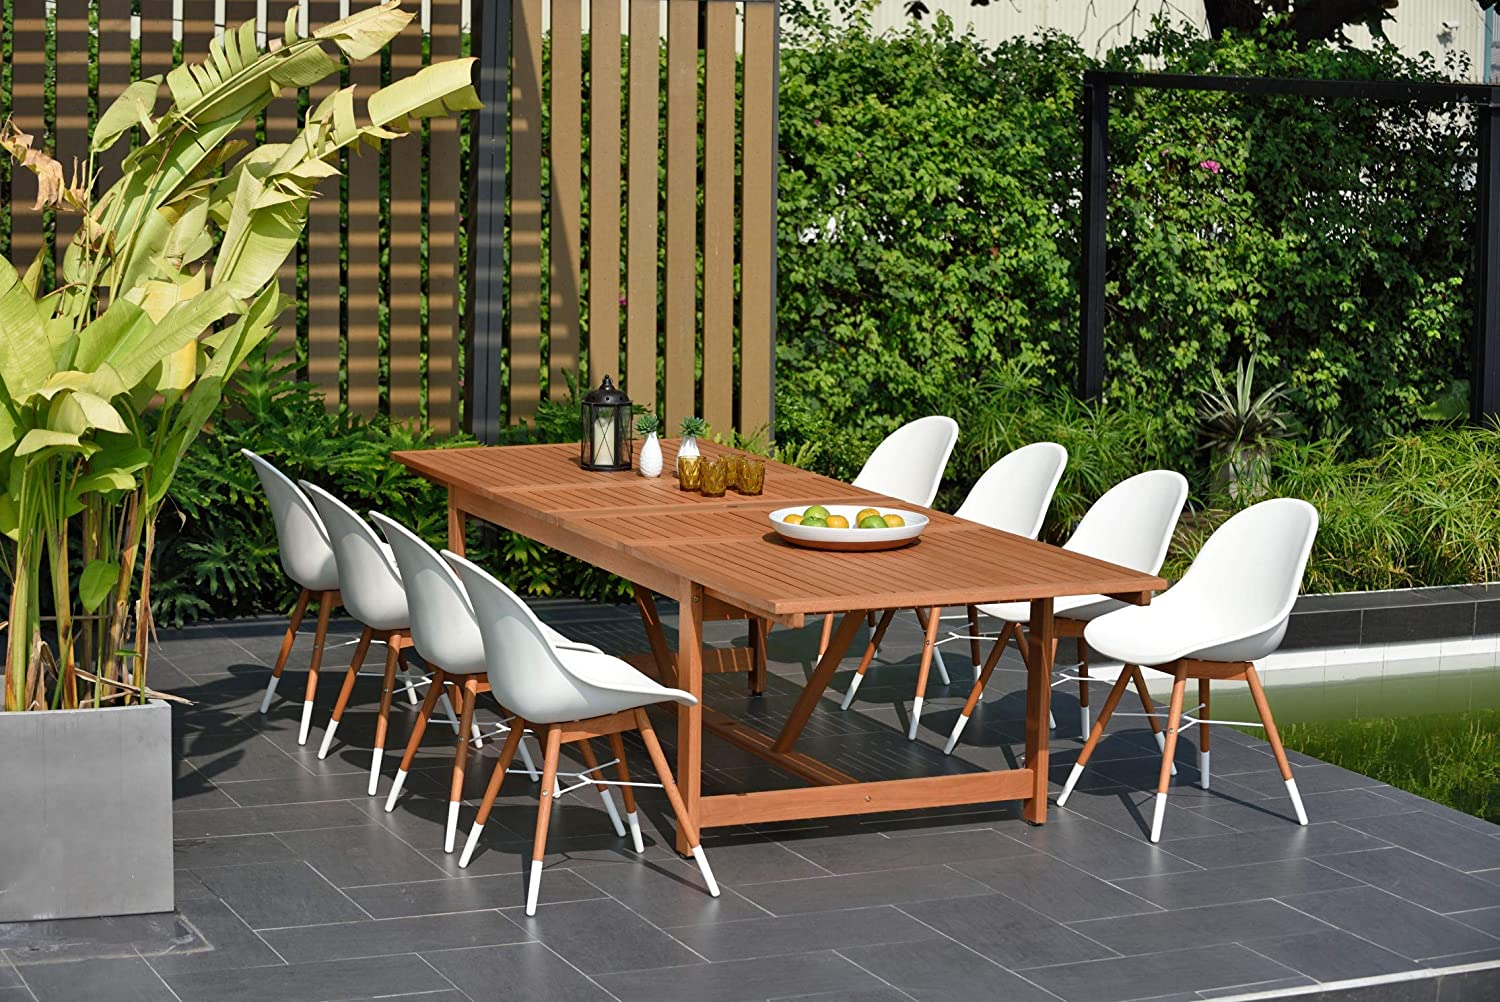 Brampton 9 Piece Outdoor Eucalyptus Extendable Dining Set | Perfect for Patio | with White Chairs, Dark